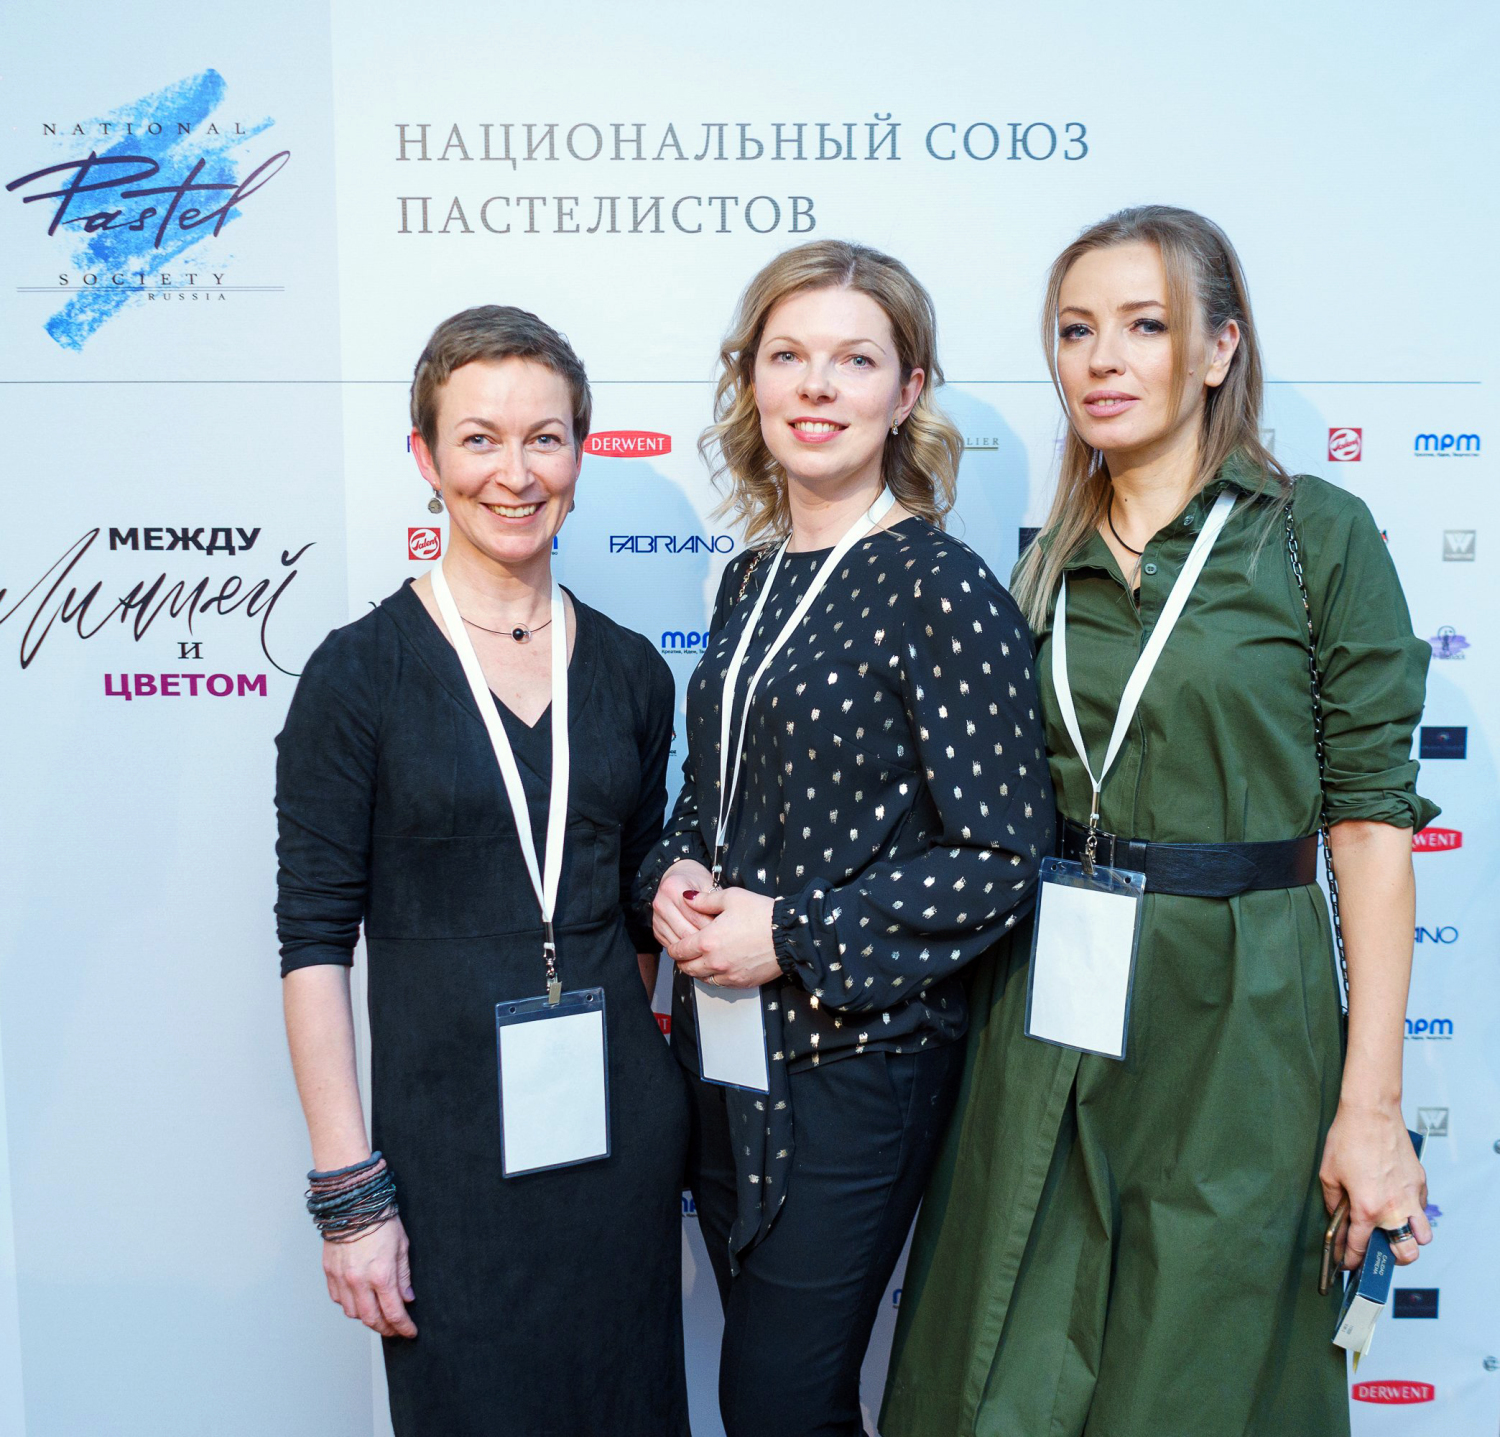 Svetlana Cameron with Olga Abramova and Elena Tatkina